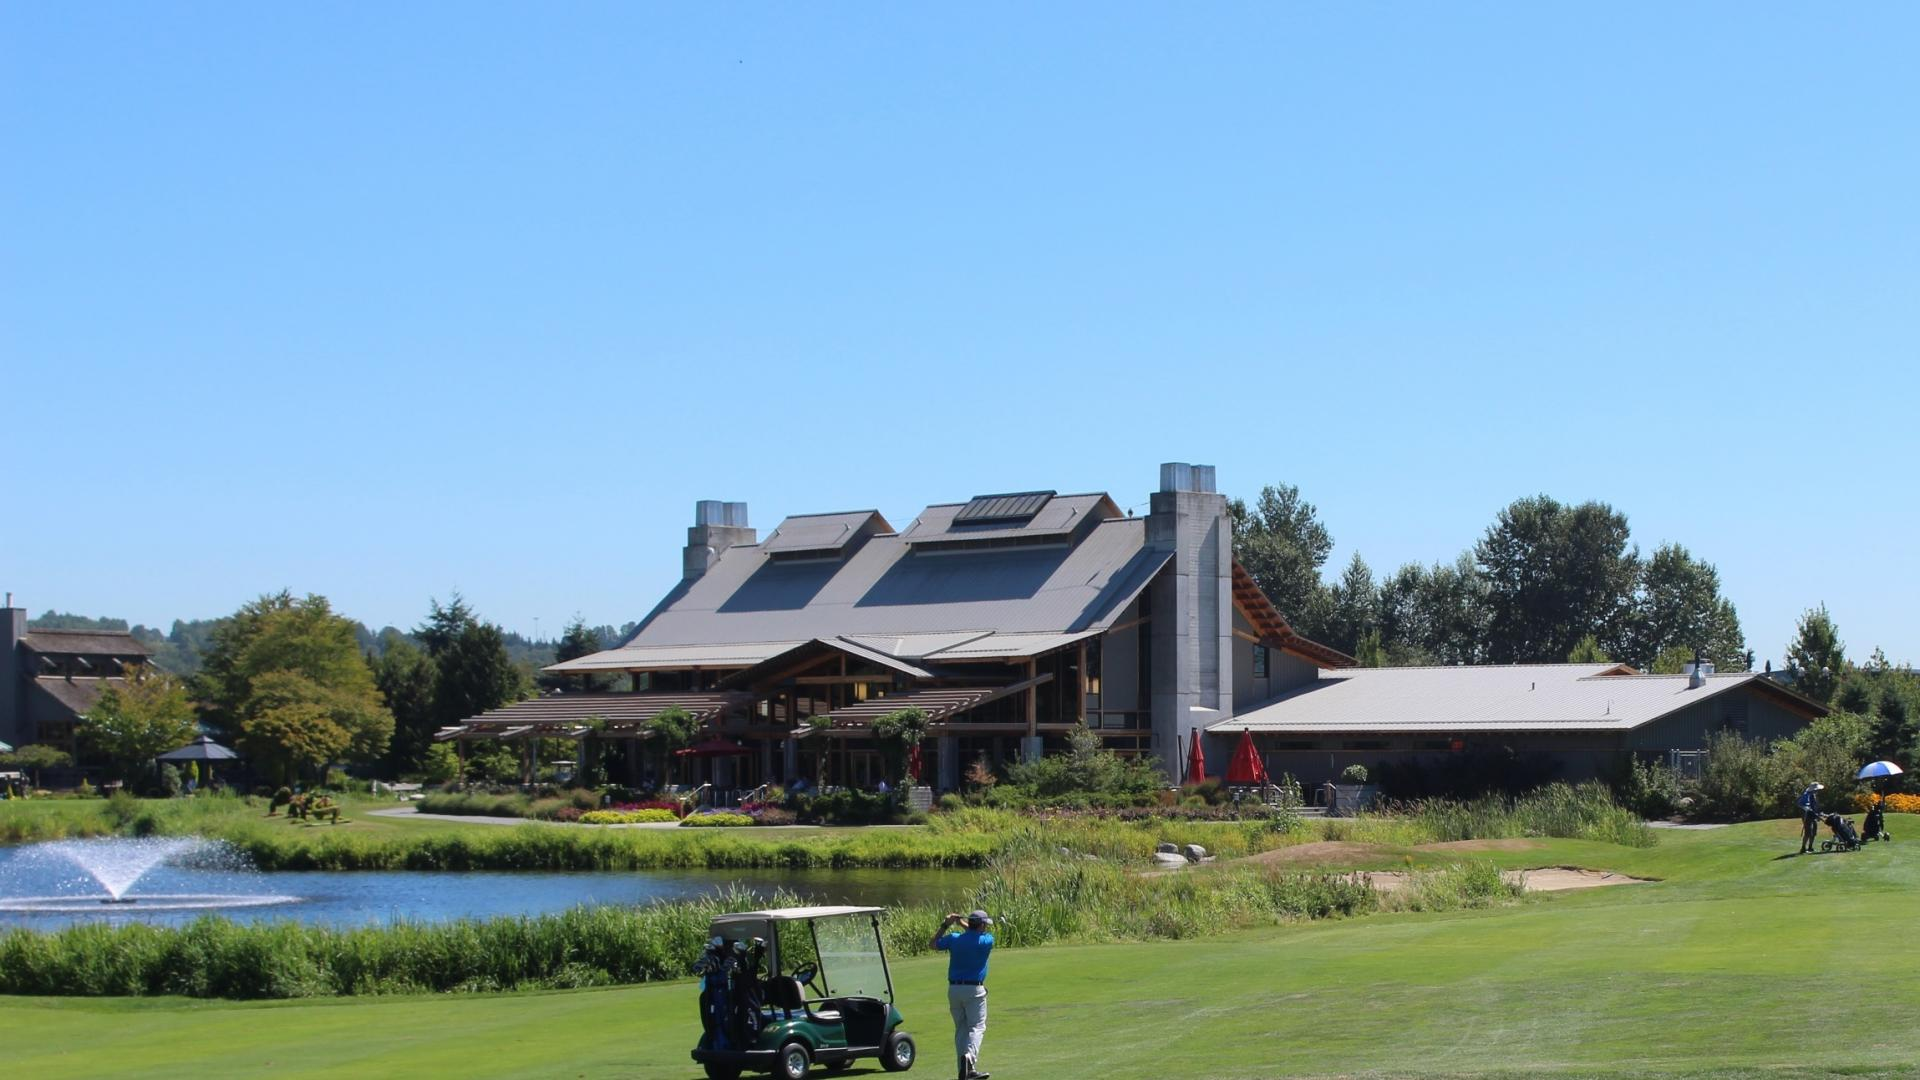 Riverway Clubhouse serves as the backdrop for a golfer taking a swing